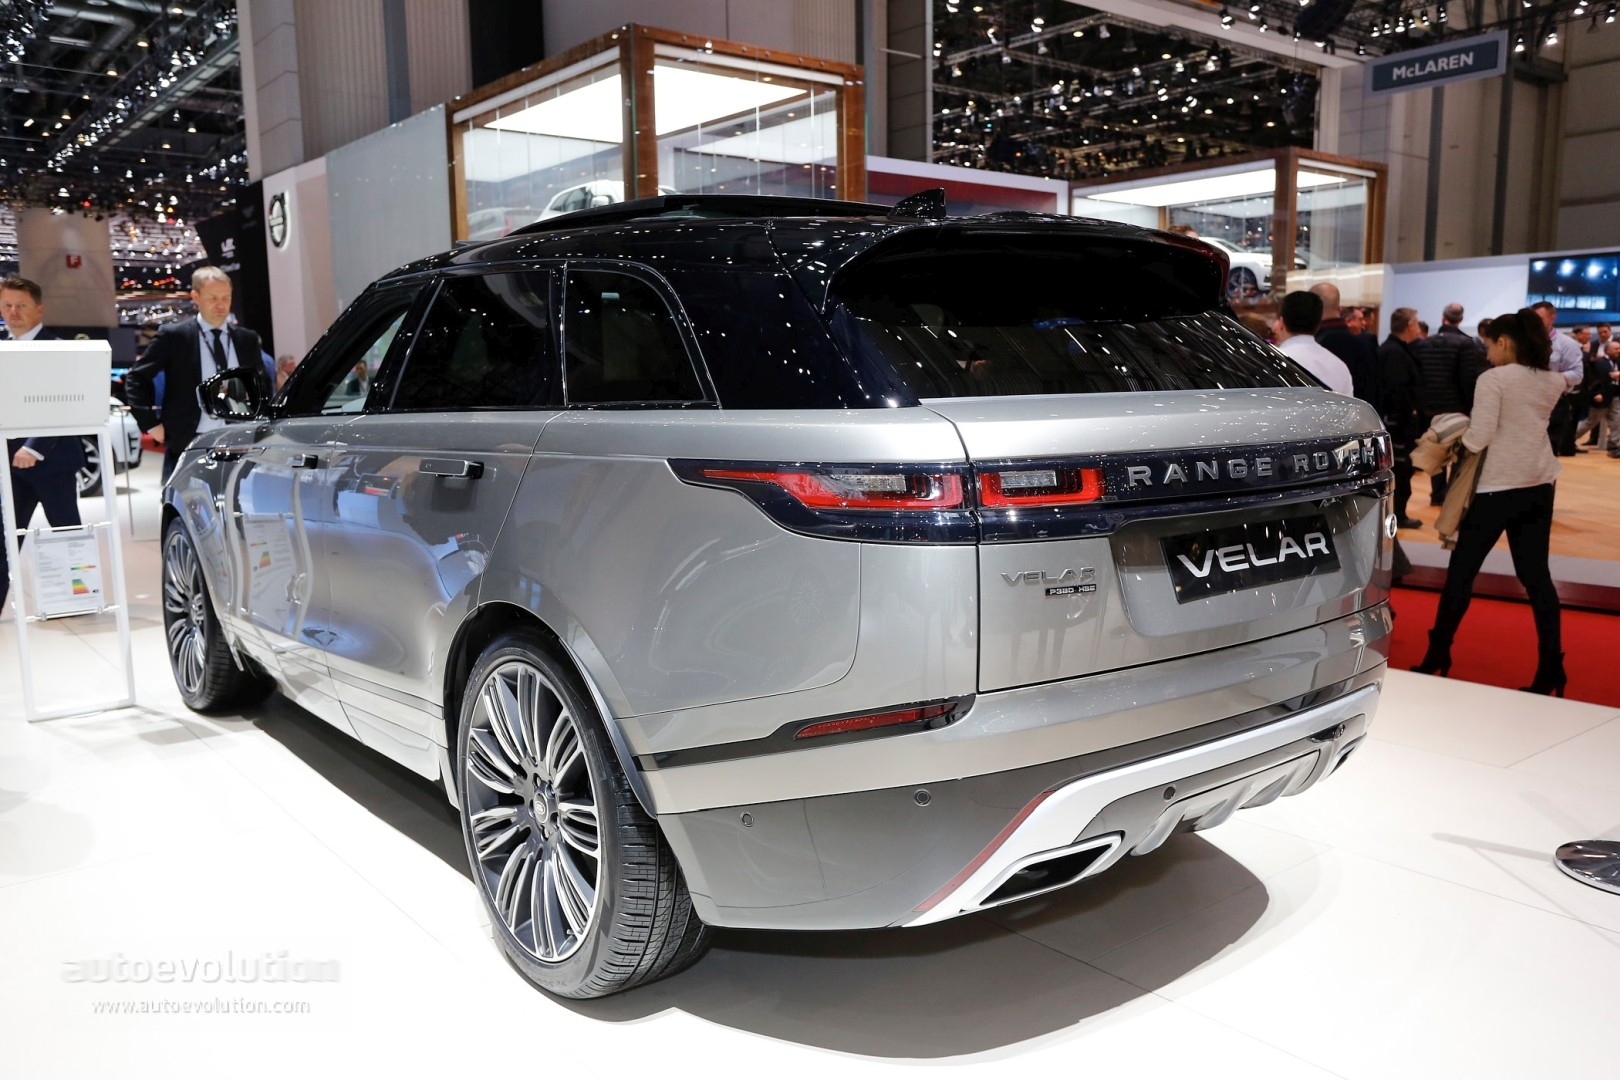 range rover velar costs range rover sport money in geneva feels lavish autoevolution. Black Bedroom Furniture Sets. Home Design Ideas